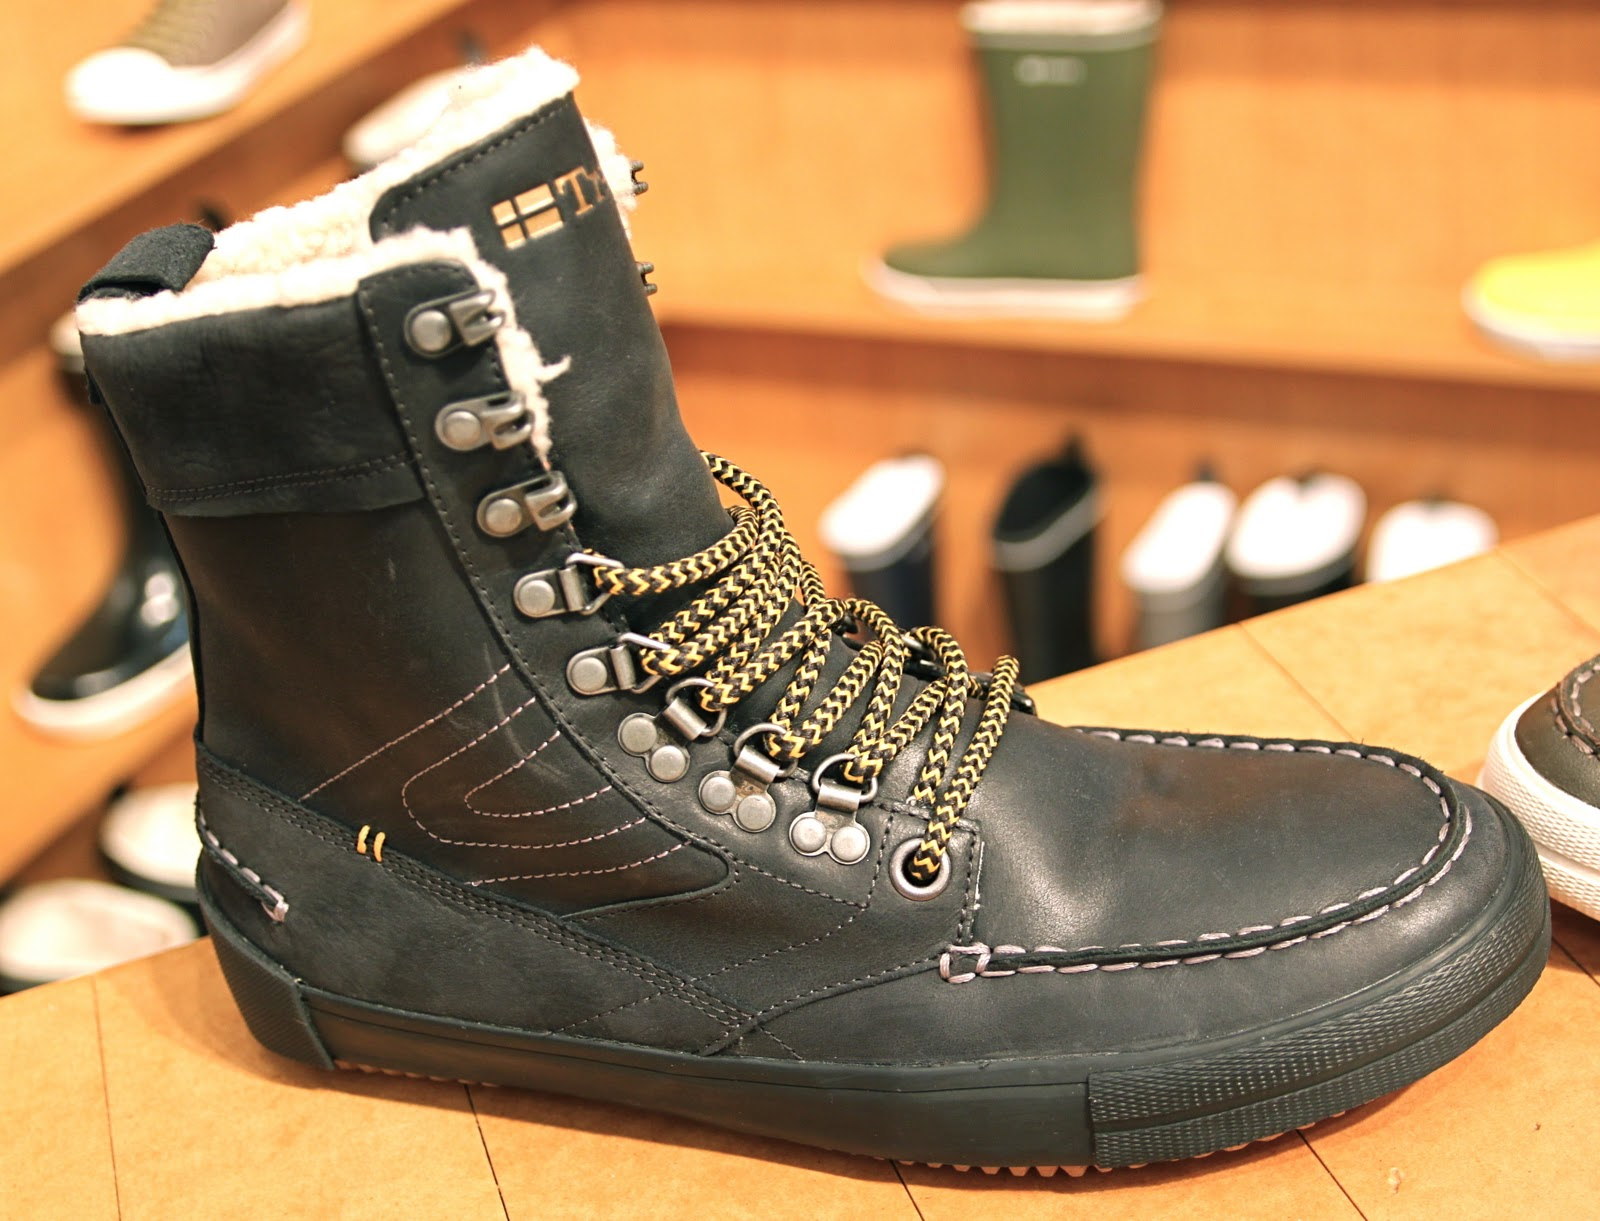 TRETORN®: FALL 2011-THE 120th ANNIVERSARY COLLECTION